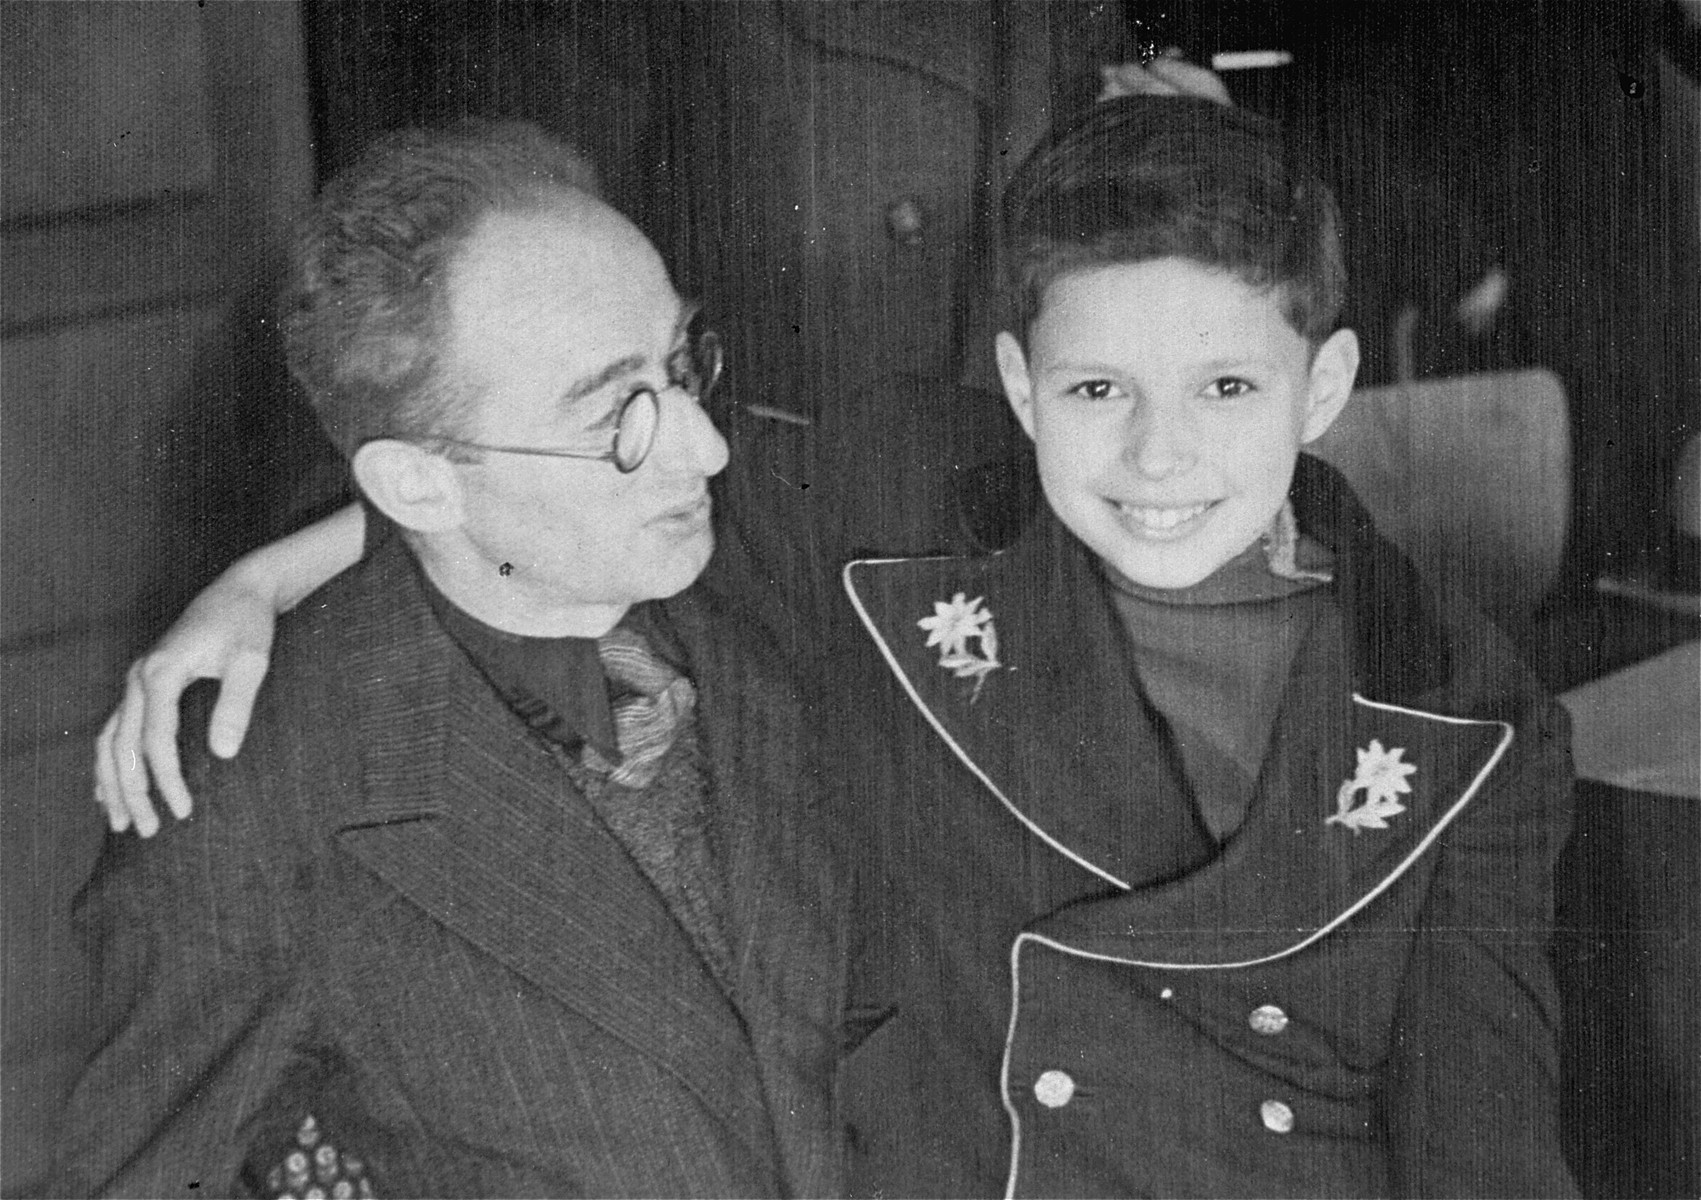 Child survivor, Luigi Ferri, poses with the Austrian Jewish physician who looked after him during their internment in Auschwitz.  The photograph is inscribed to the donor, Frieda Fish Greenspan, a Polish-Jewish survivor who befriended Luigi after the war in Krakow.